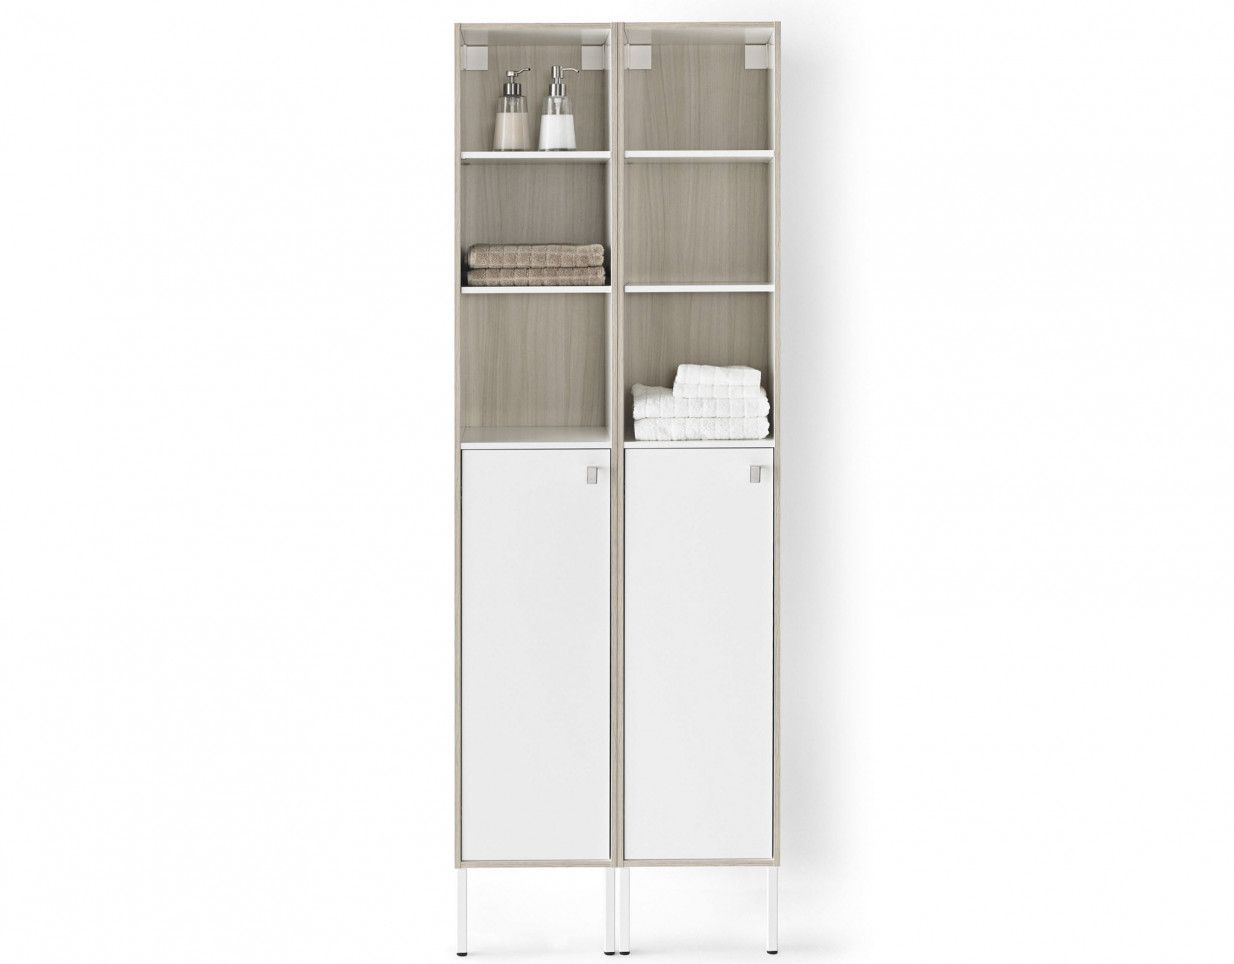 Ikea eckregal bad. ikea has released their new products with sales